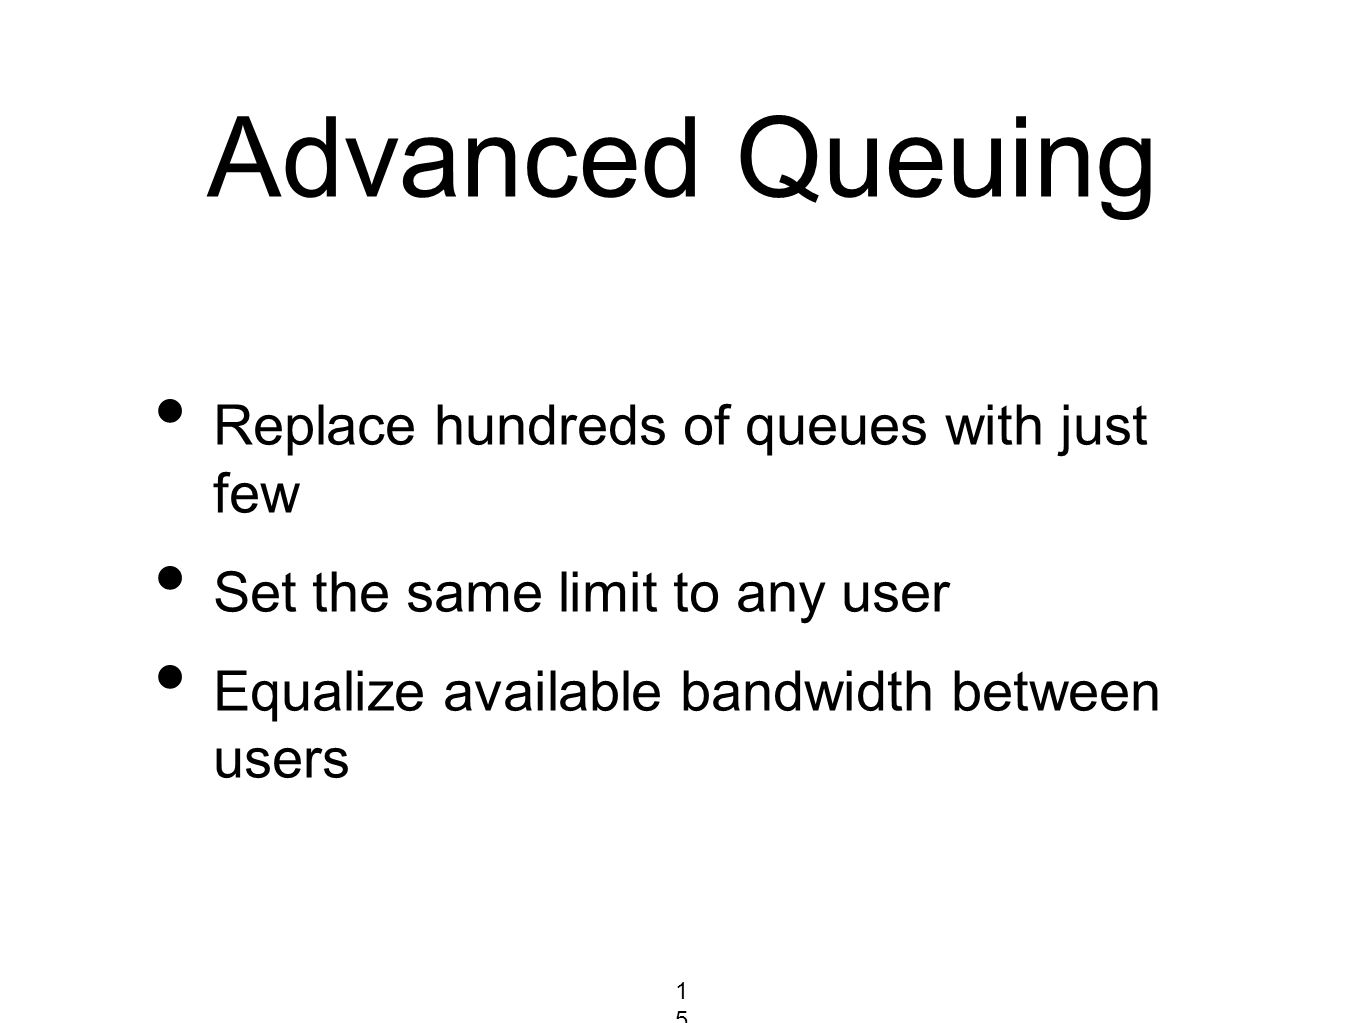 Advanced Queuing Replace hundreds of queues with just few Set the same limit to any user Equalize available bandwidth between users 154154154